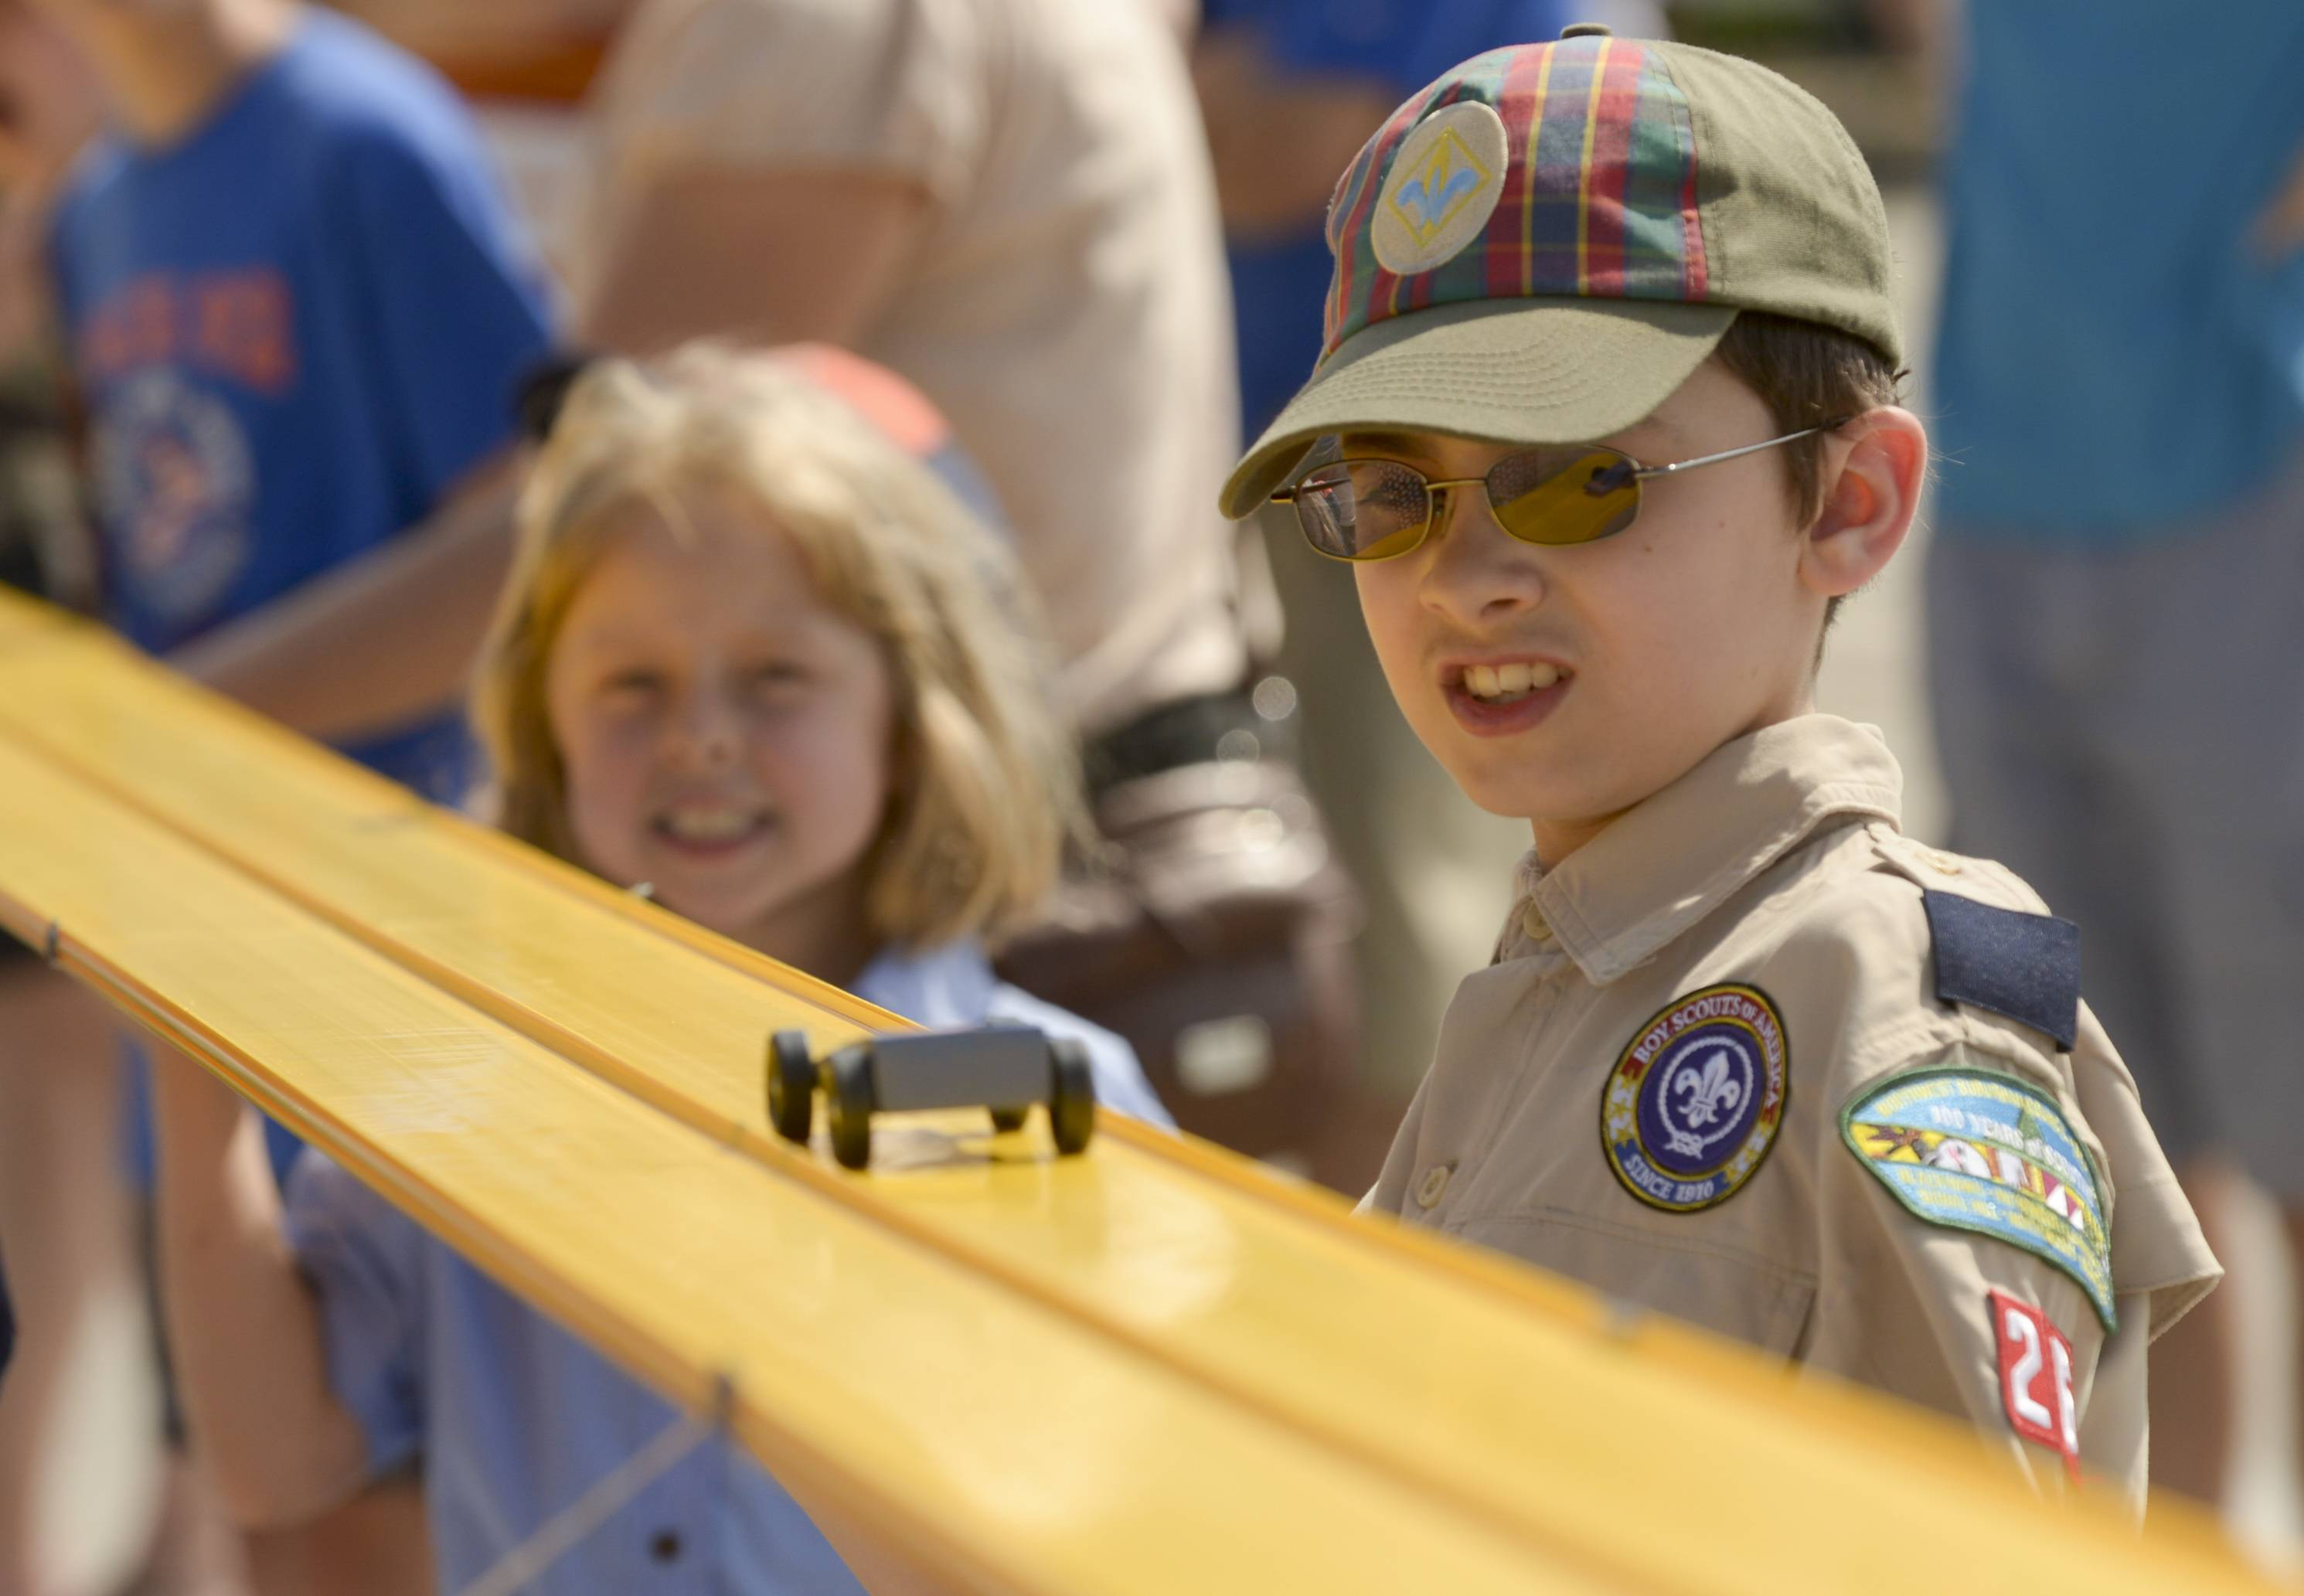 Will Knogl, 10, of Des Plaines Pack 263, watches as one of the cars wiz past him as the Northwest Suburban Council - Boy Scouts of America successfully raced a car along a 620 foot track in parking lot G of Woodfield Mall in Schaumburg. The council hopes that this will get them into the Guinness Book of World Record for the Longest Pinewood Derby Track.